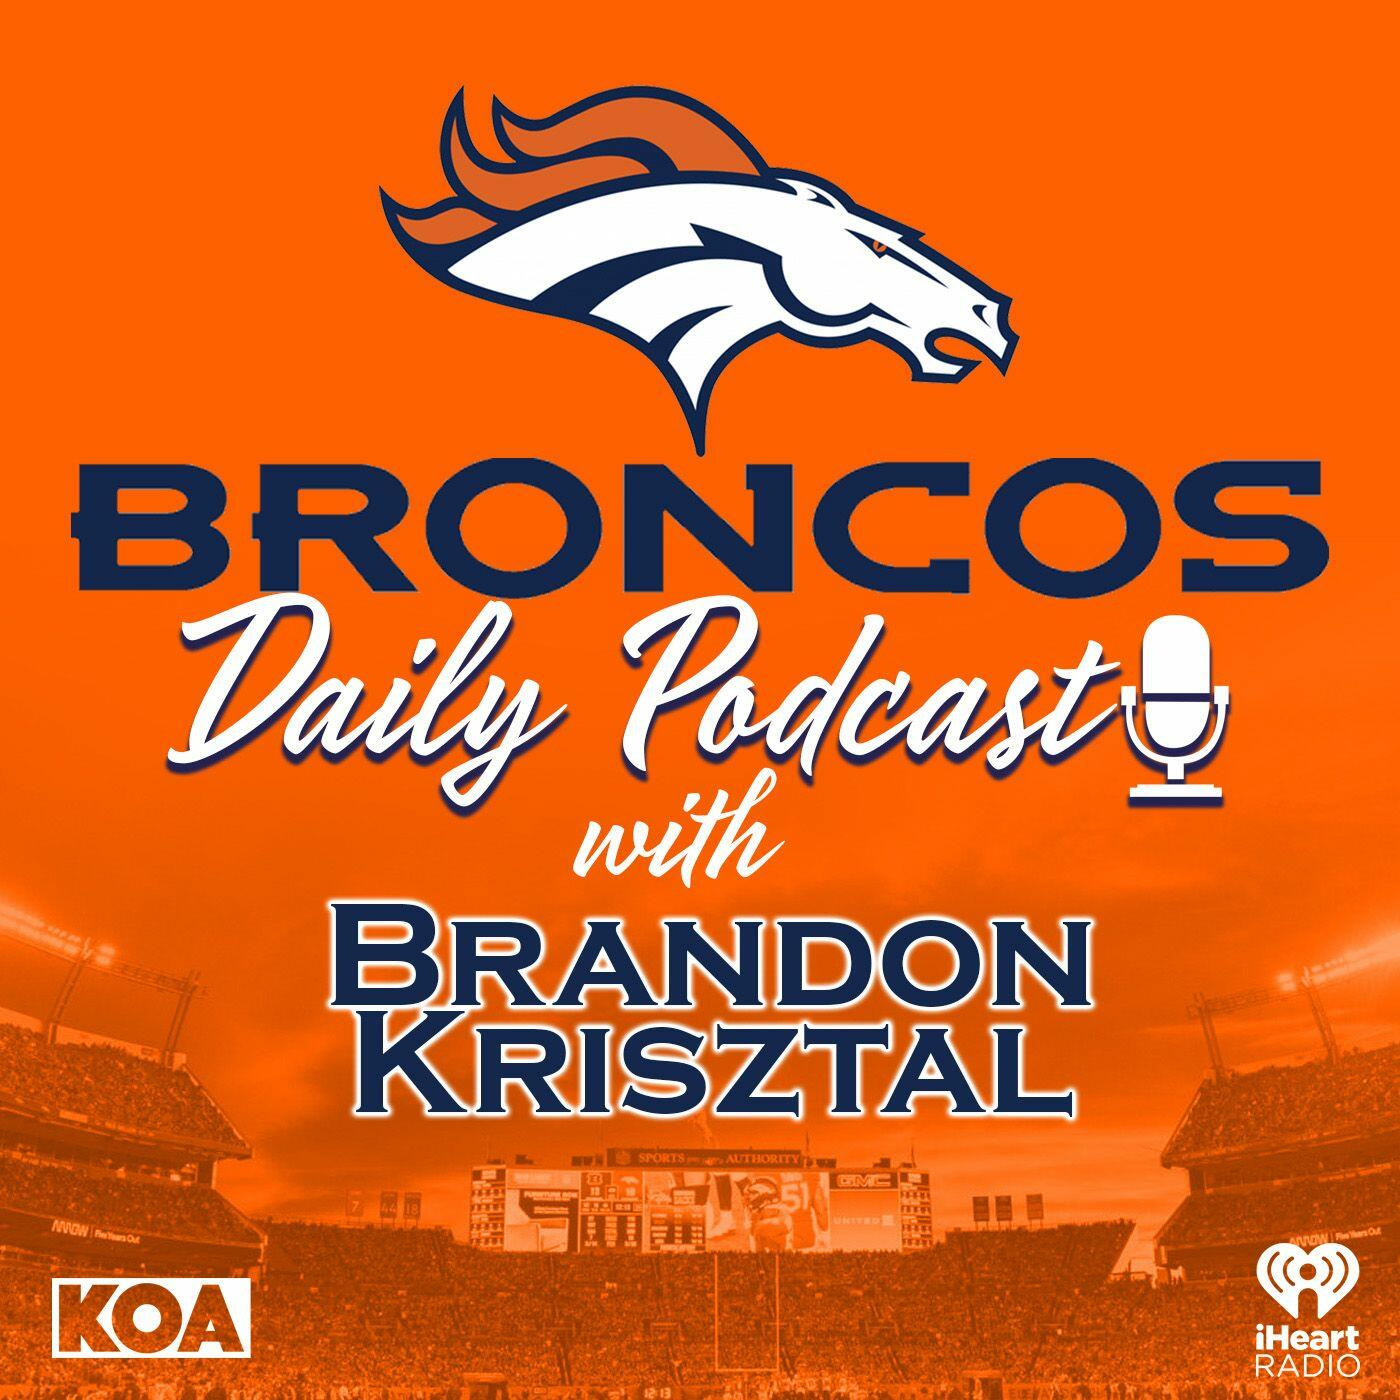 Listen to the Broncos Daily Podcast Episode - BK welcomes Broncos Country Tonight - 10-11-19 on iHeartRadio | iHeartRadio